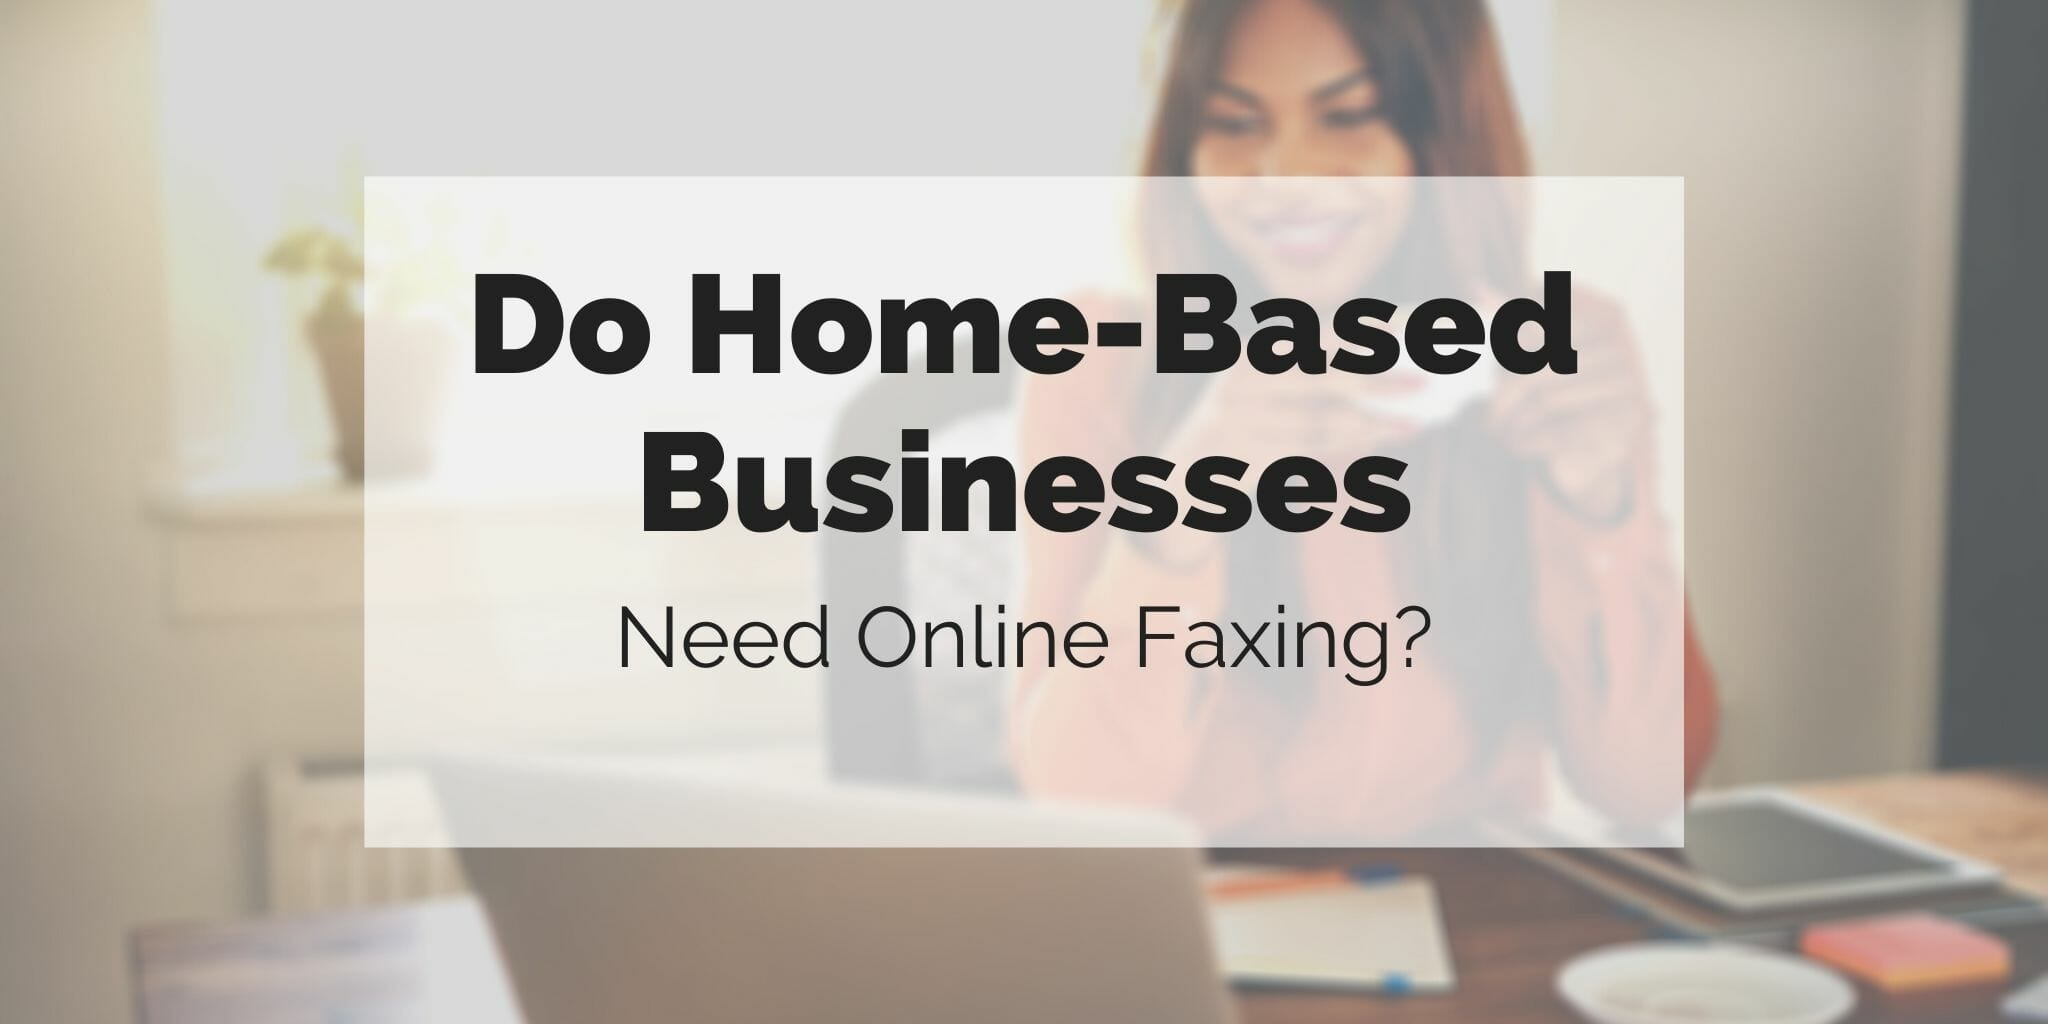 Do home-based businesses need online faxing?